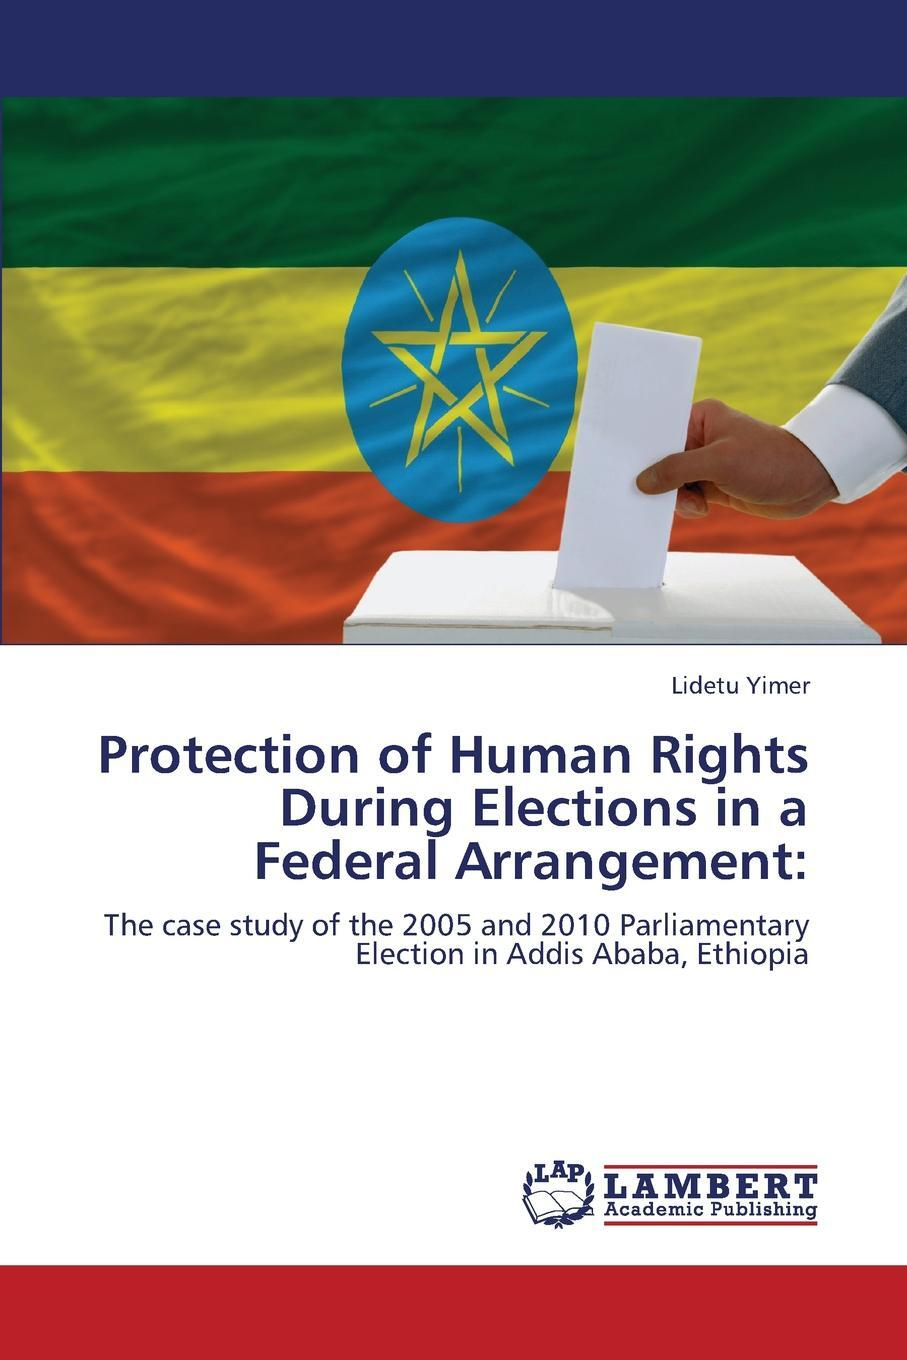 Protection of Human Rights During Elections in a Federal Arrangement. Yimer Lidetu